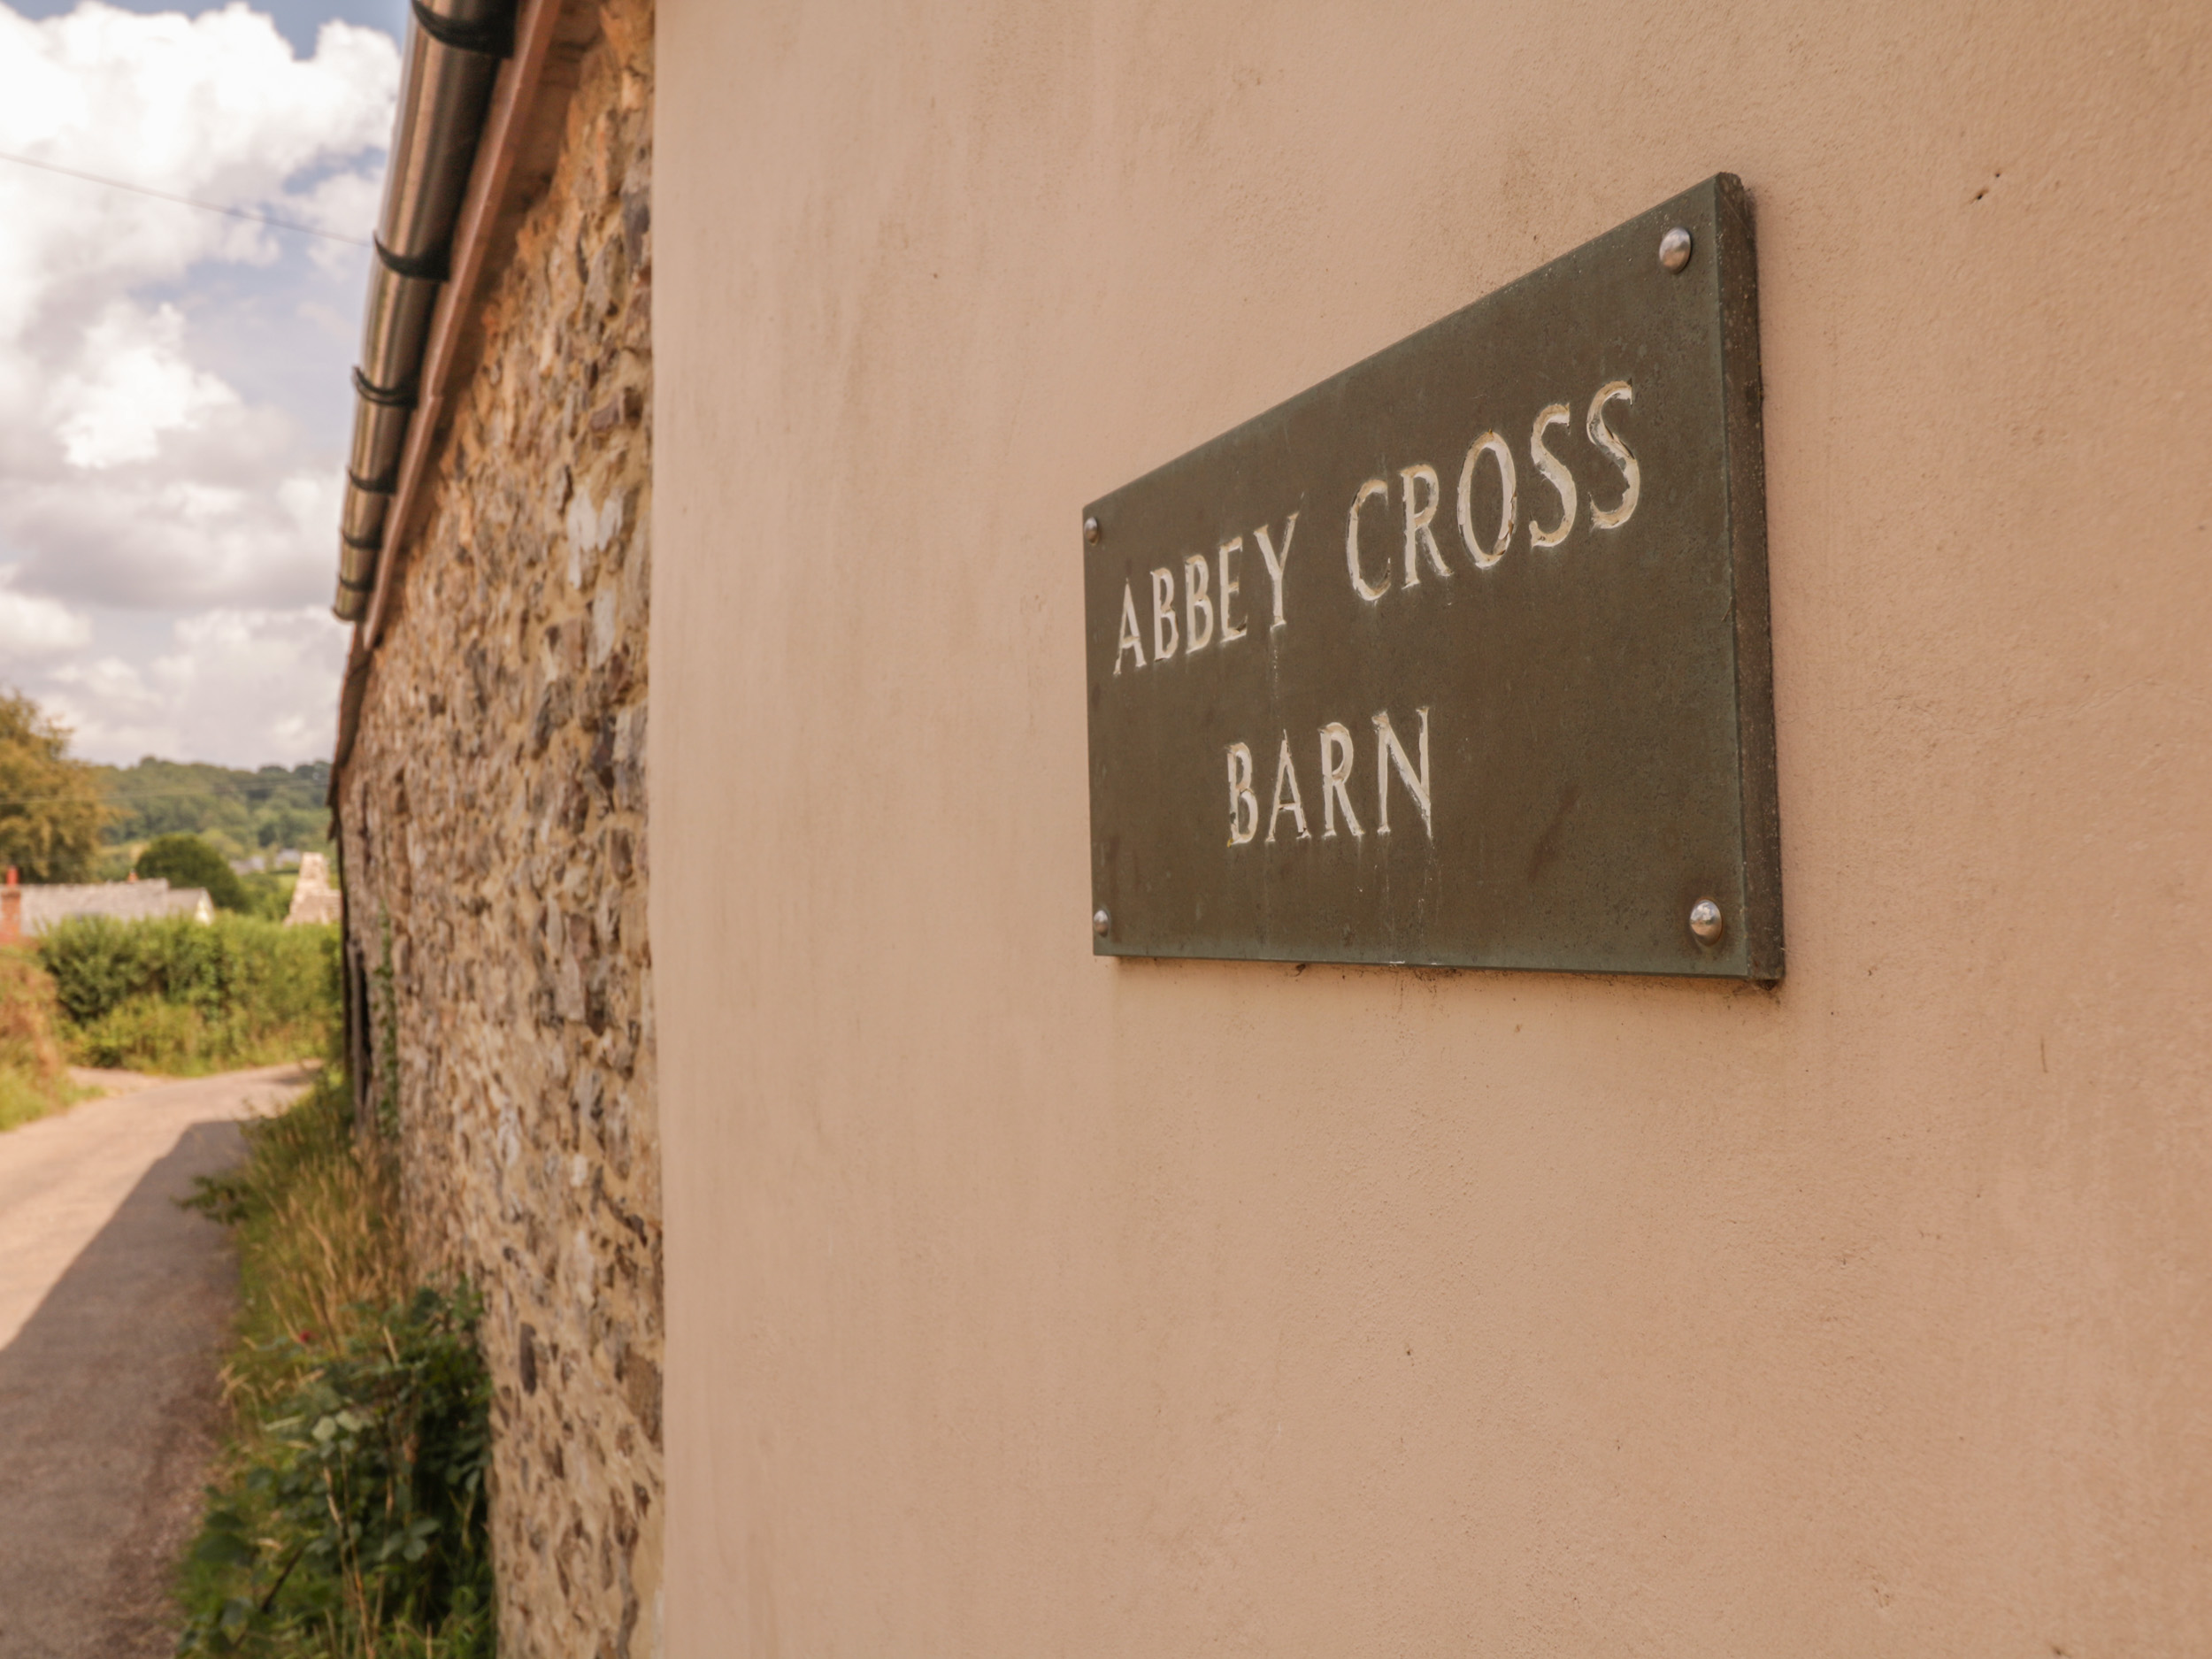 Abbey Cross Barn